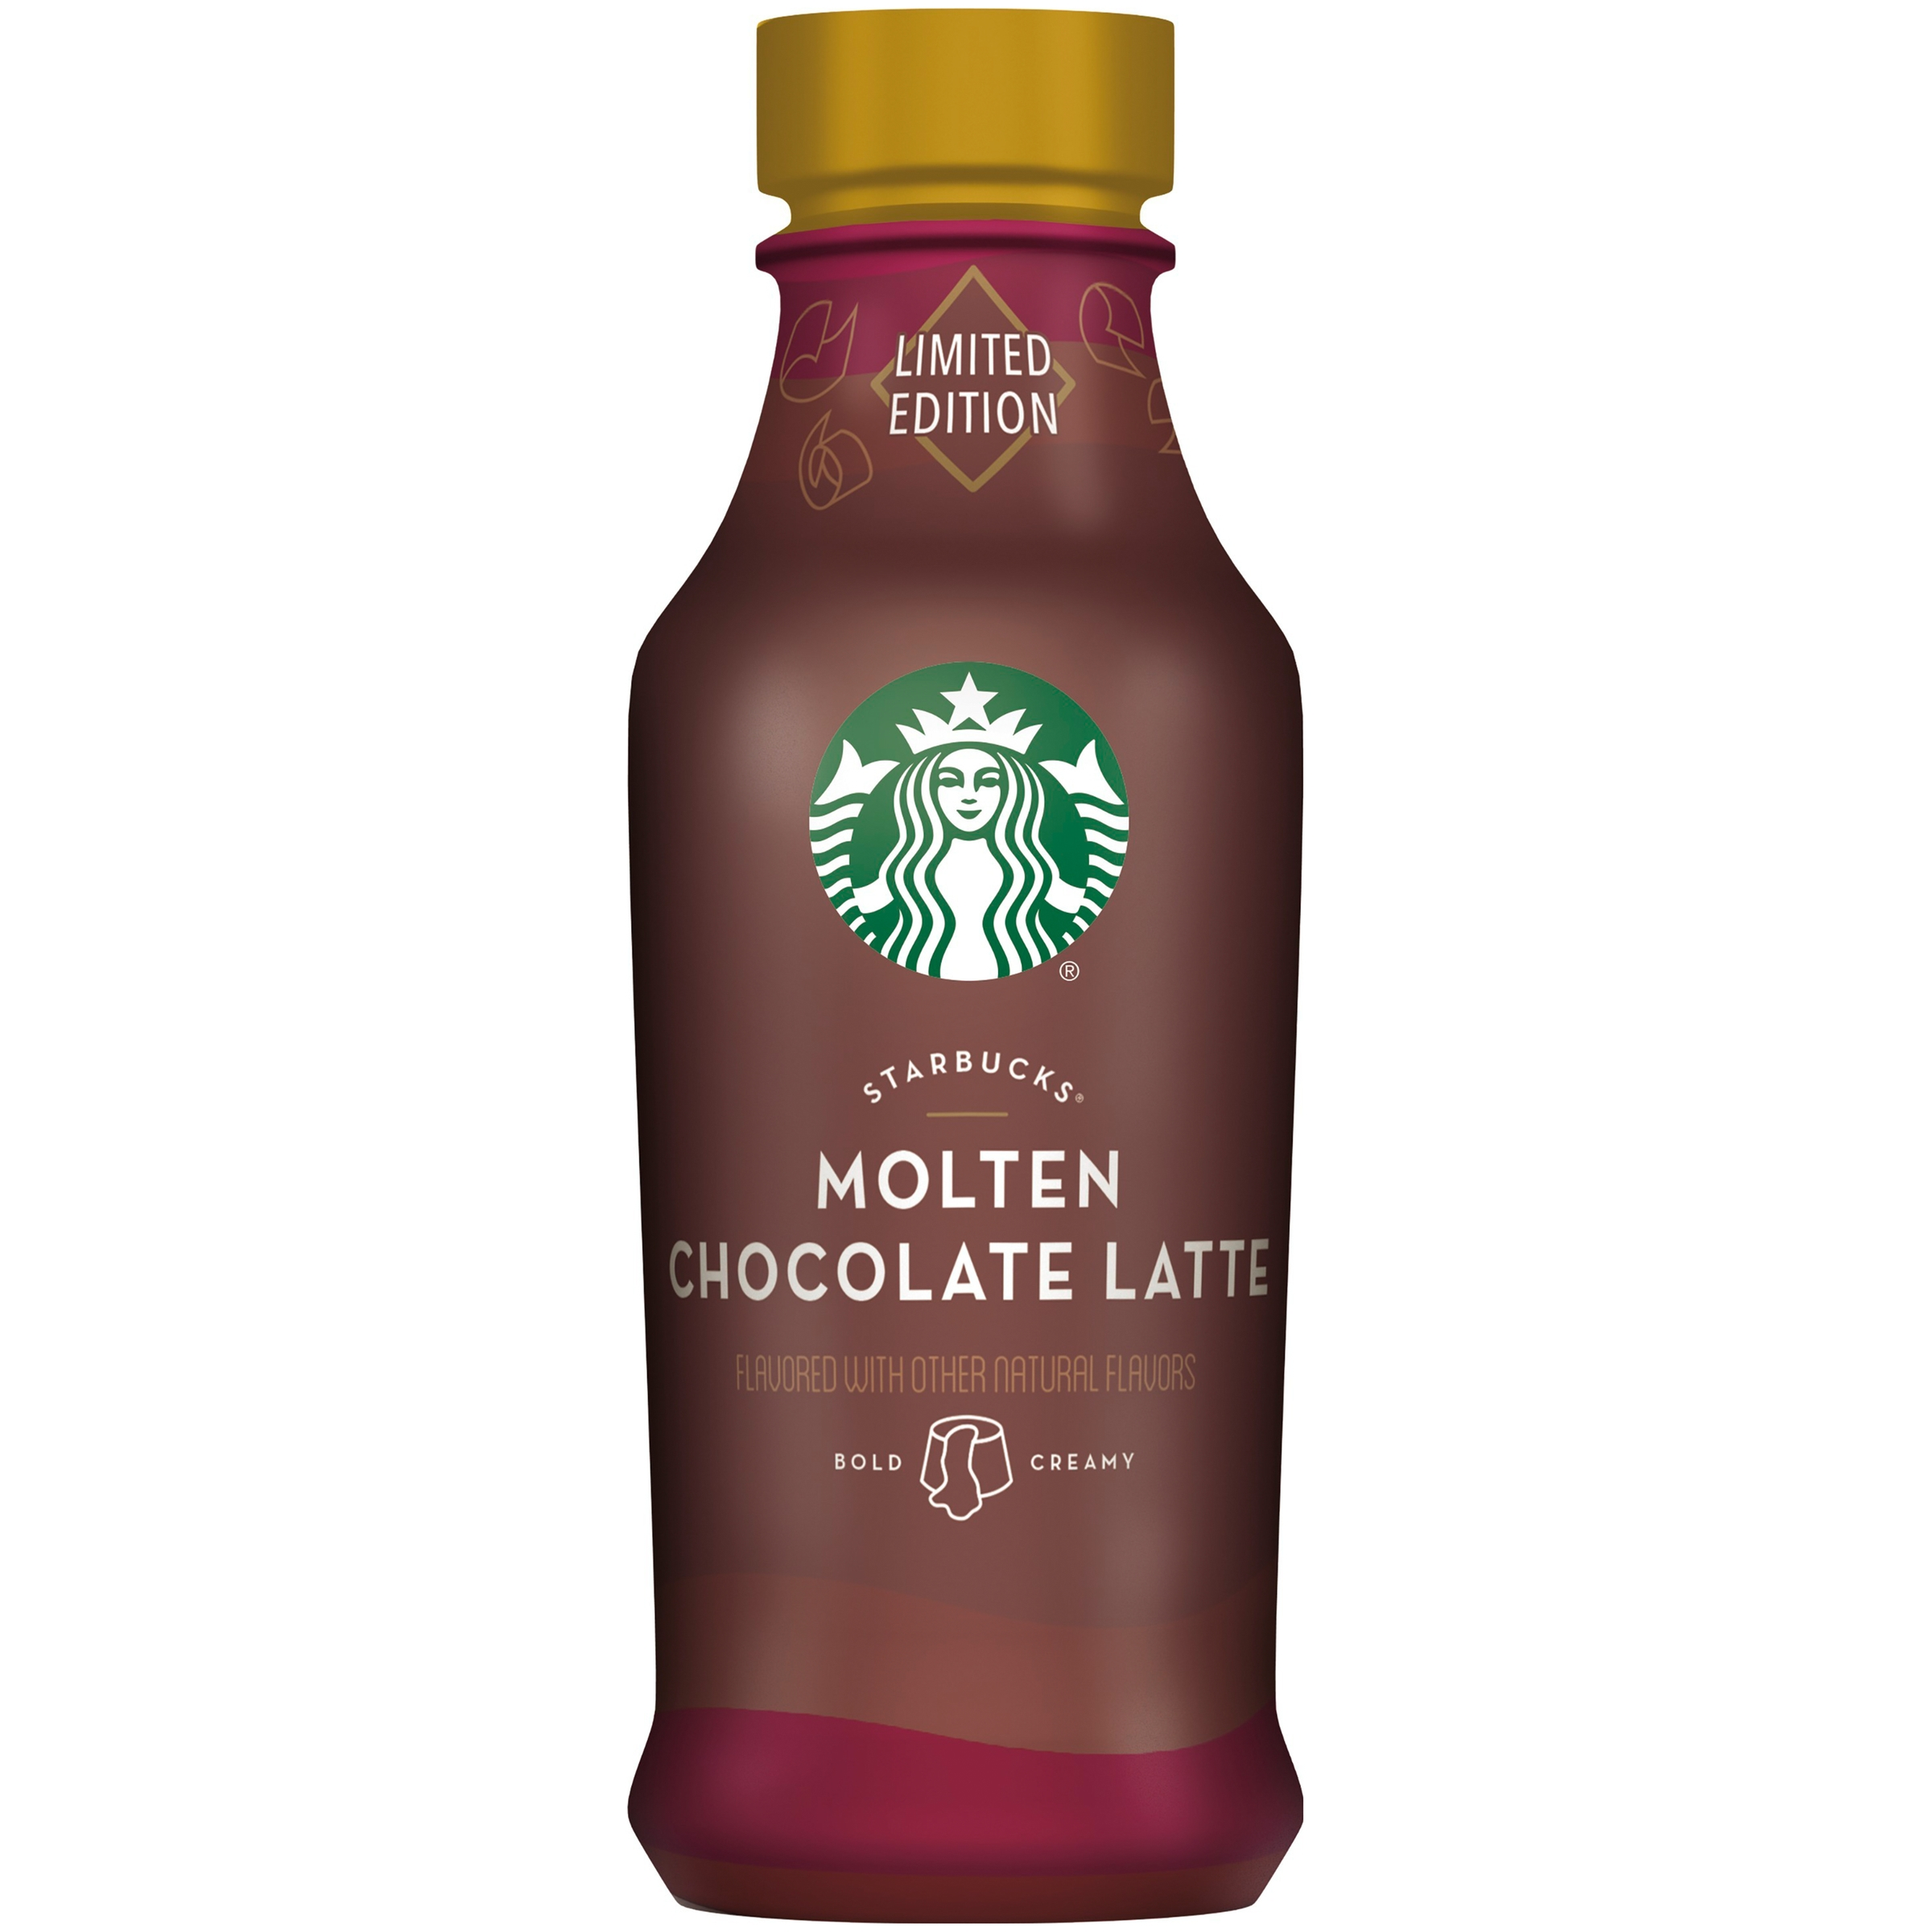 Starbucks® Molten Chocolate Latte Espresso Beverage 14 fl. oz. Bottle